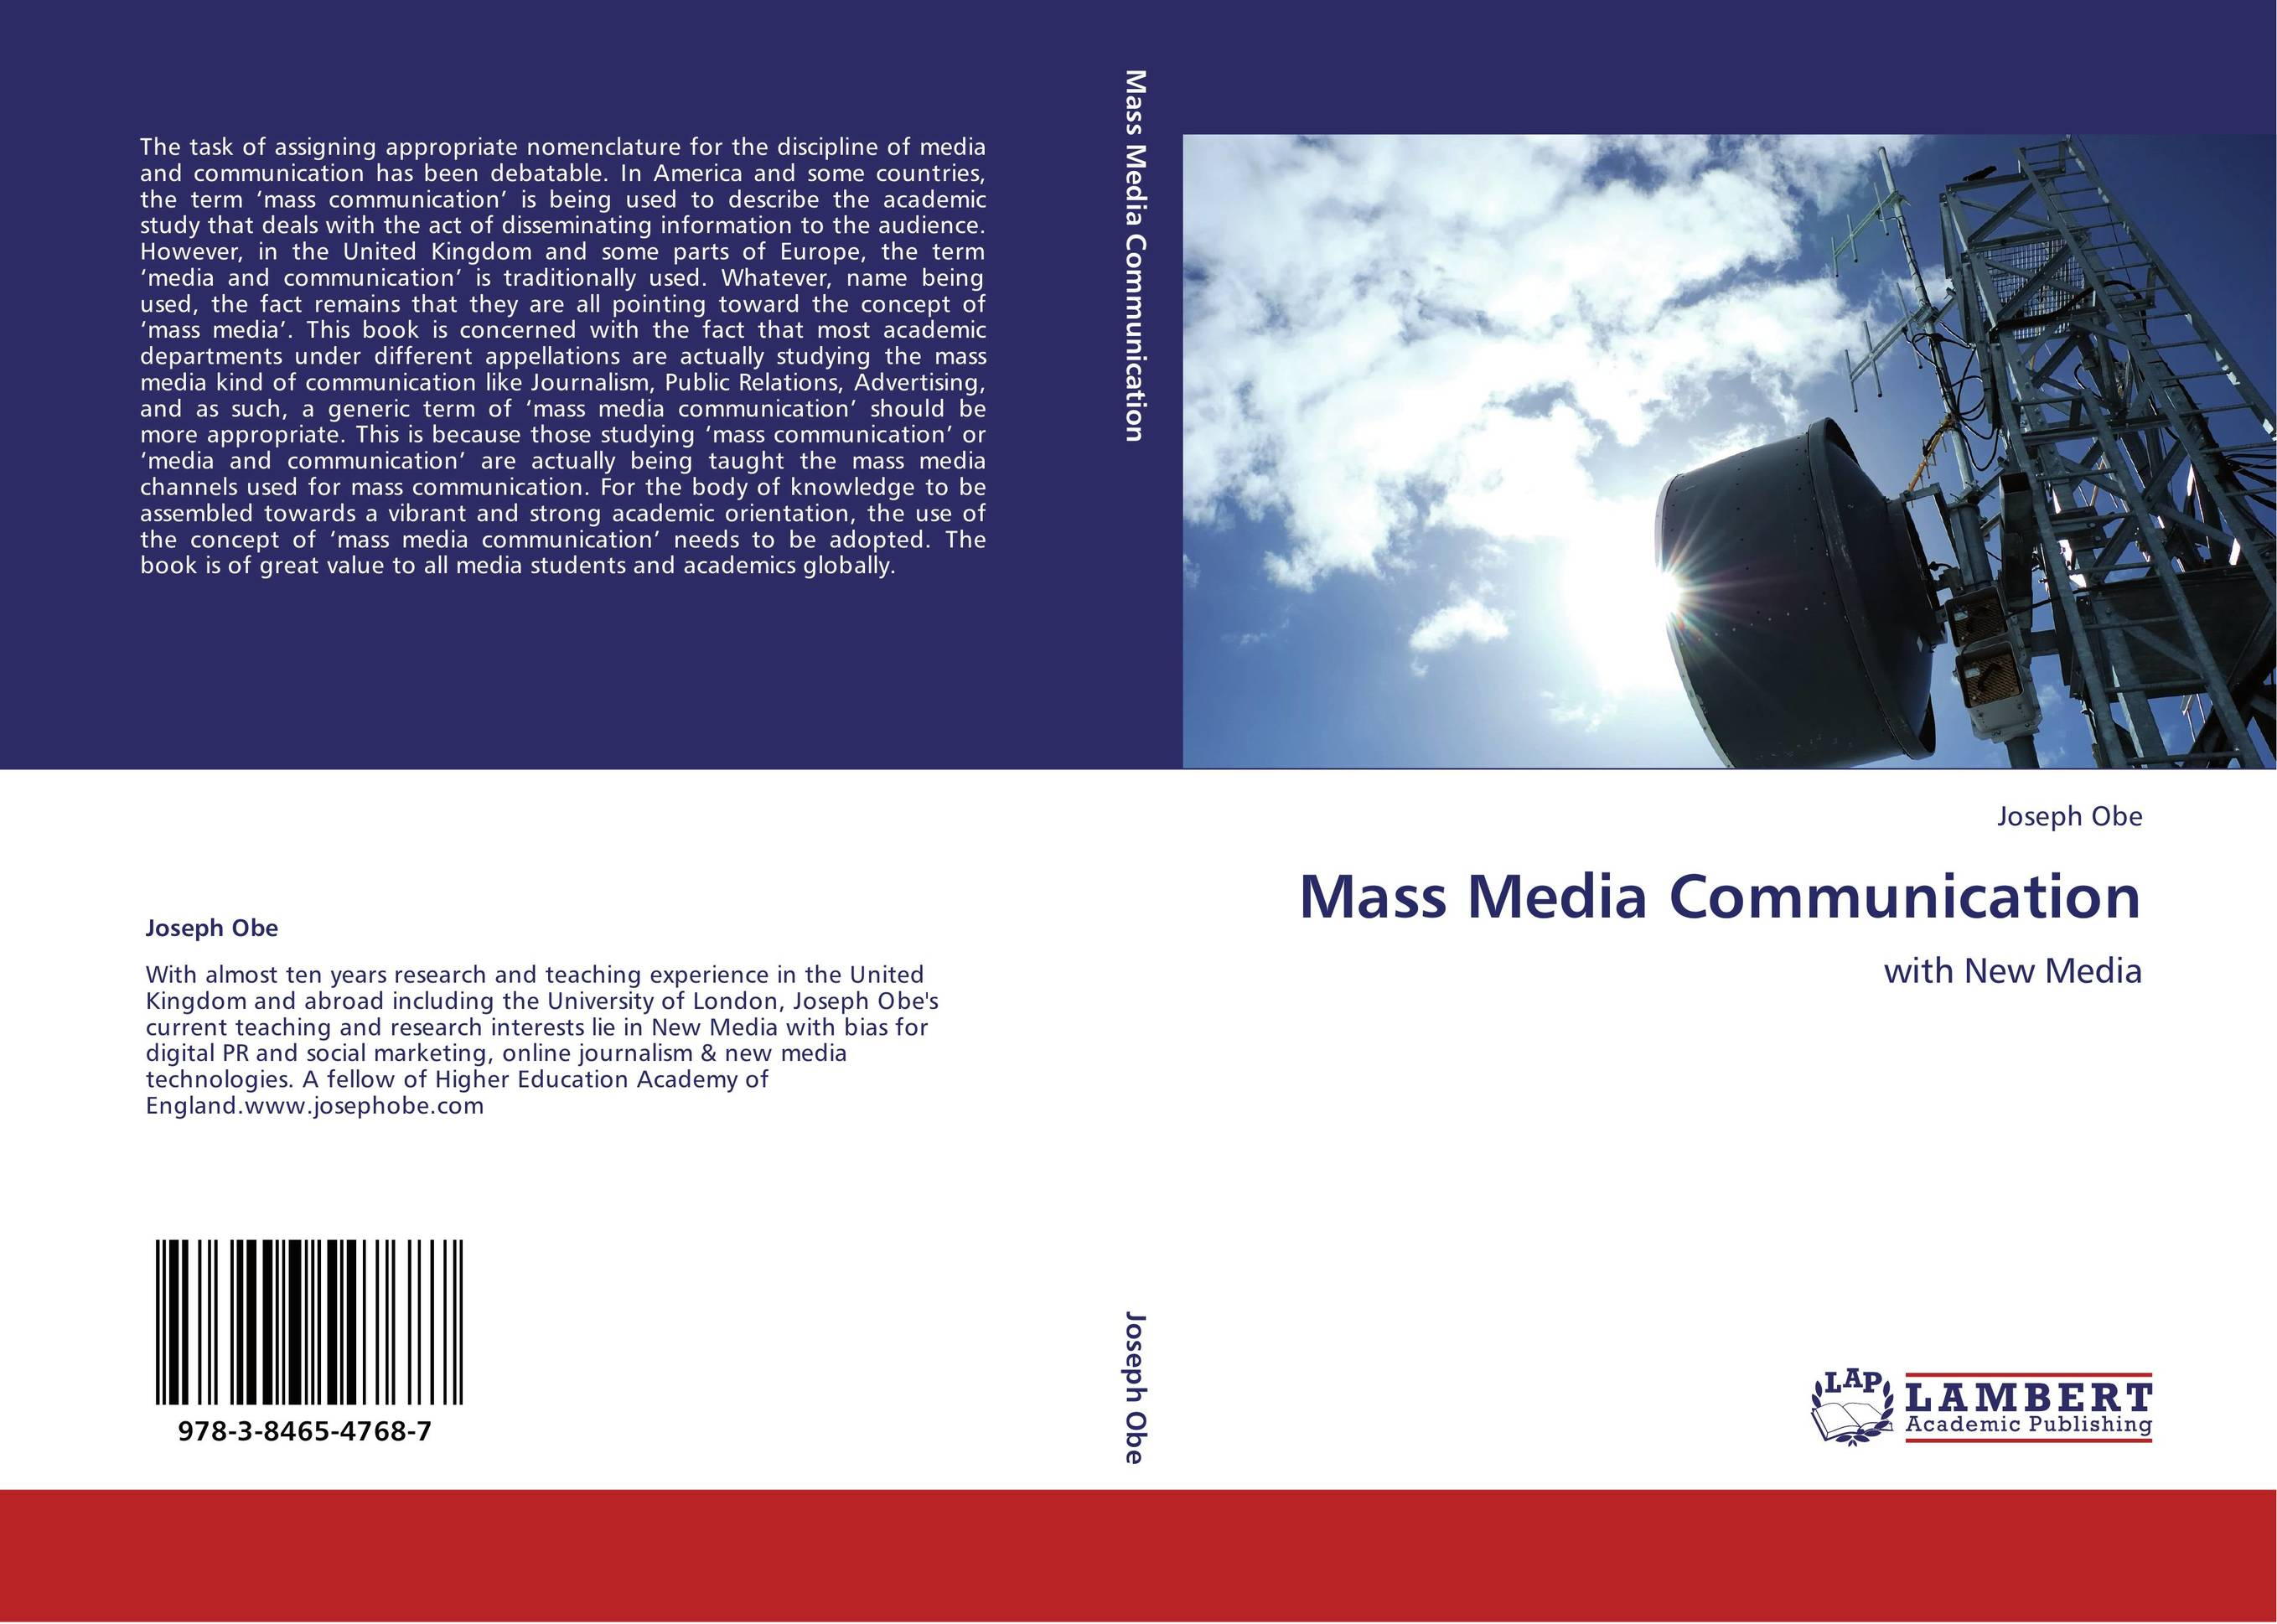 syllabus for mass communication and media Syllabus for an introduction to mass communication course during the course of the class students will: explore the historical development and current structure of the mass media examine the processes of creating, distributing, and exhibiting mass media content for diverse audiences.